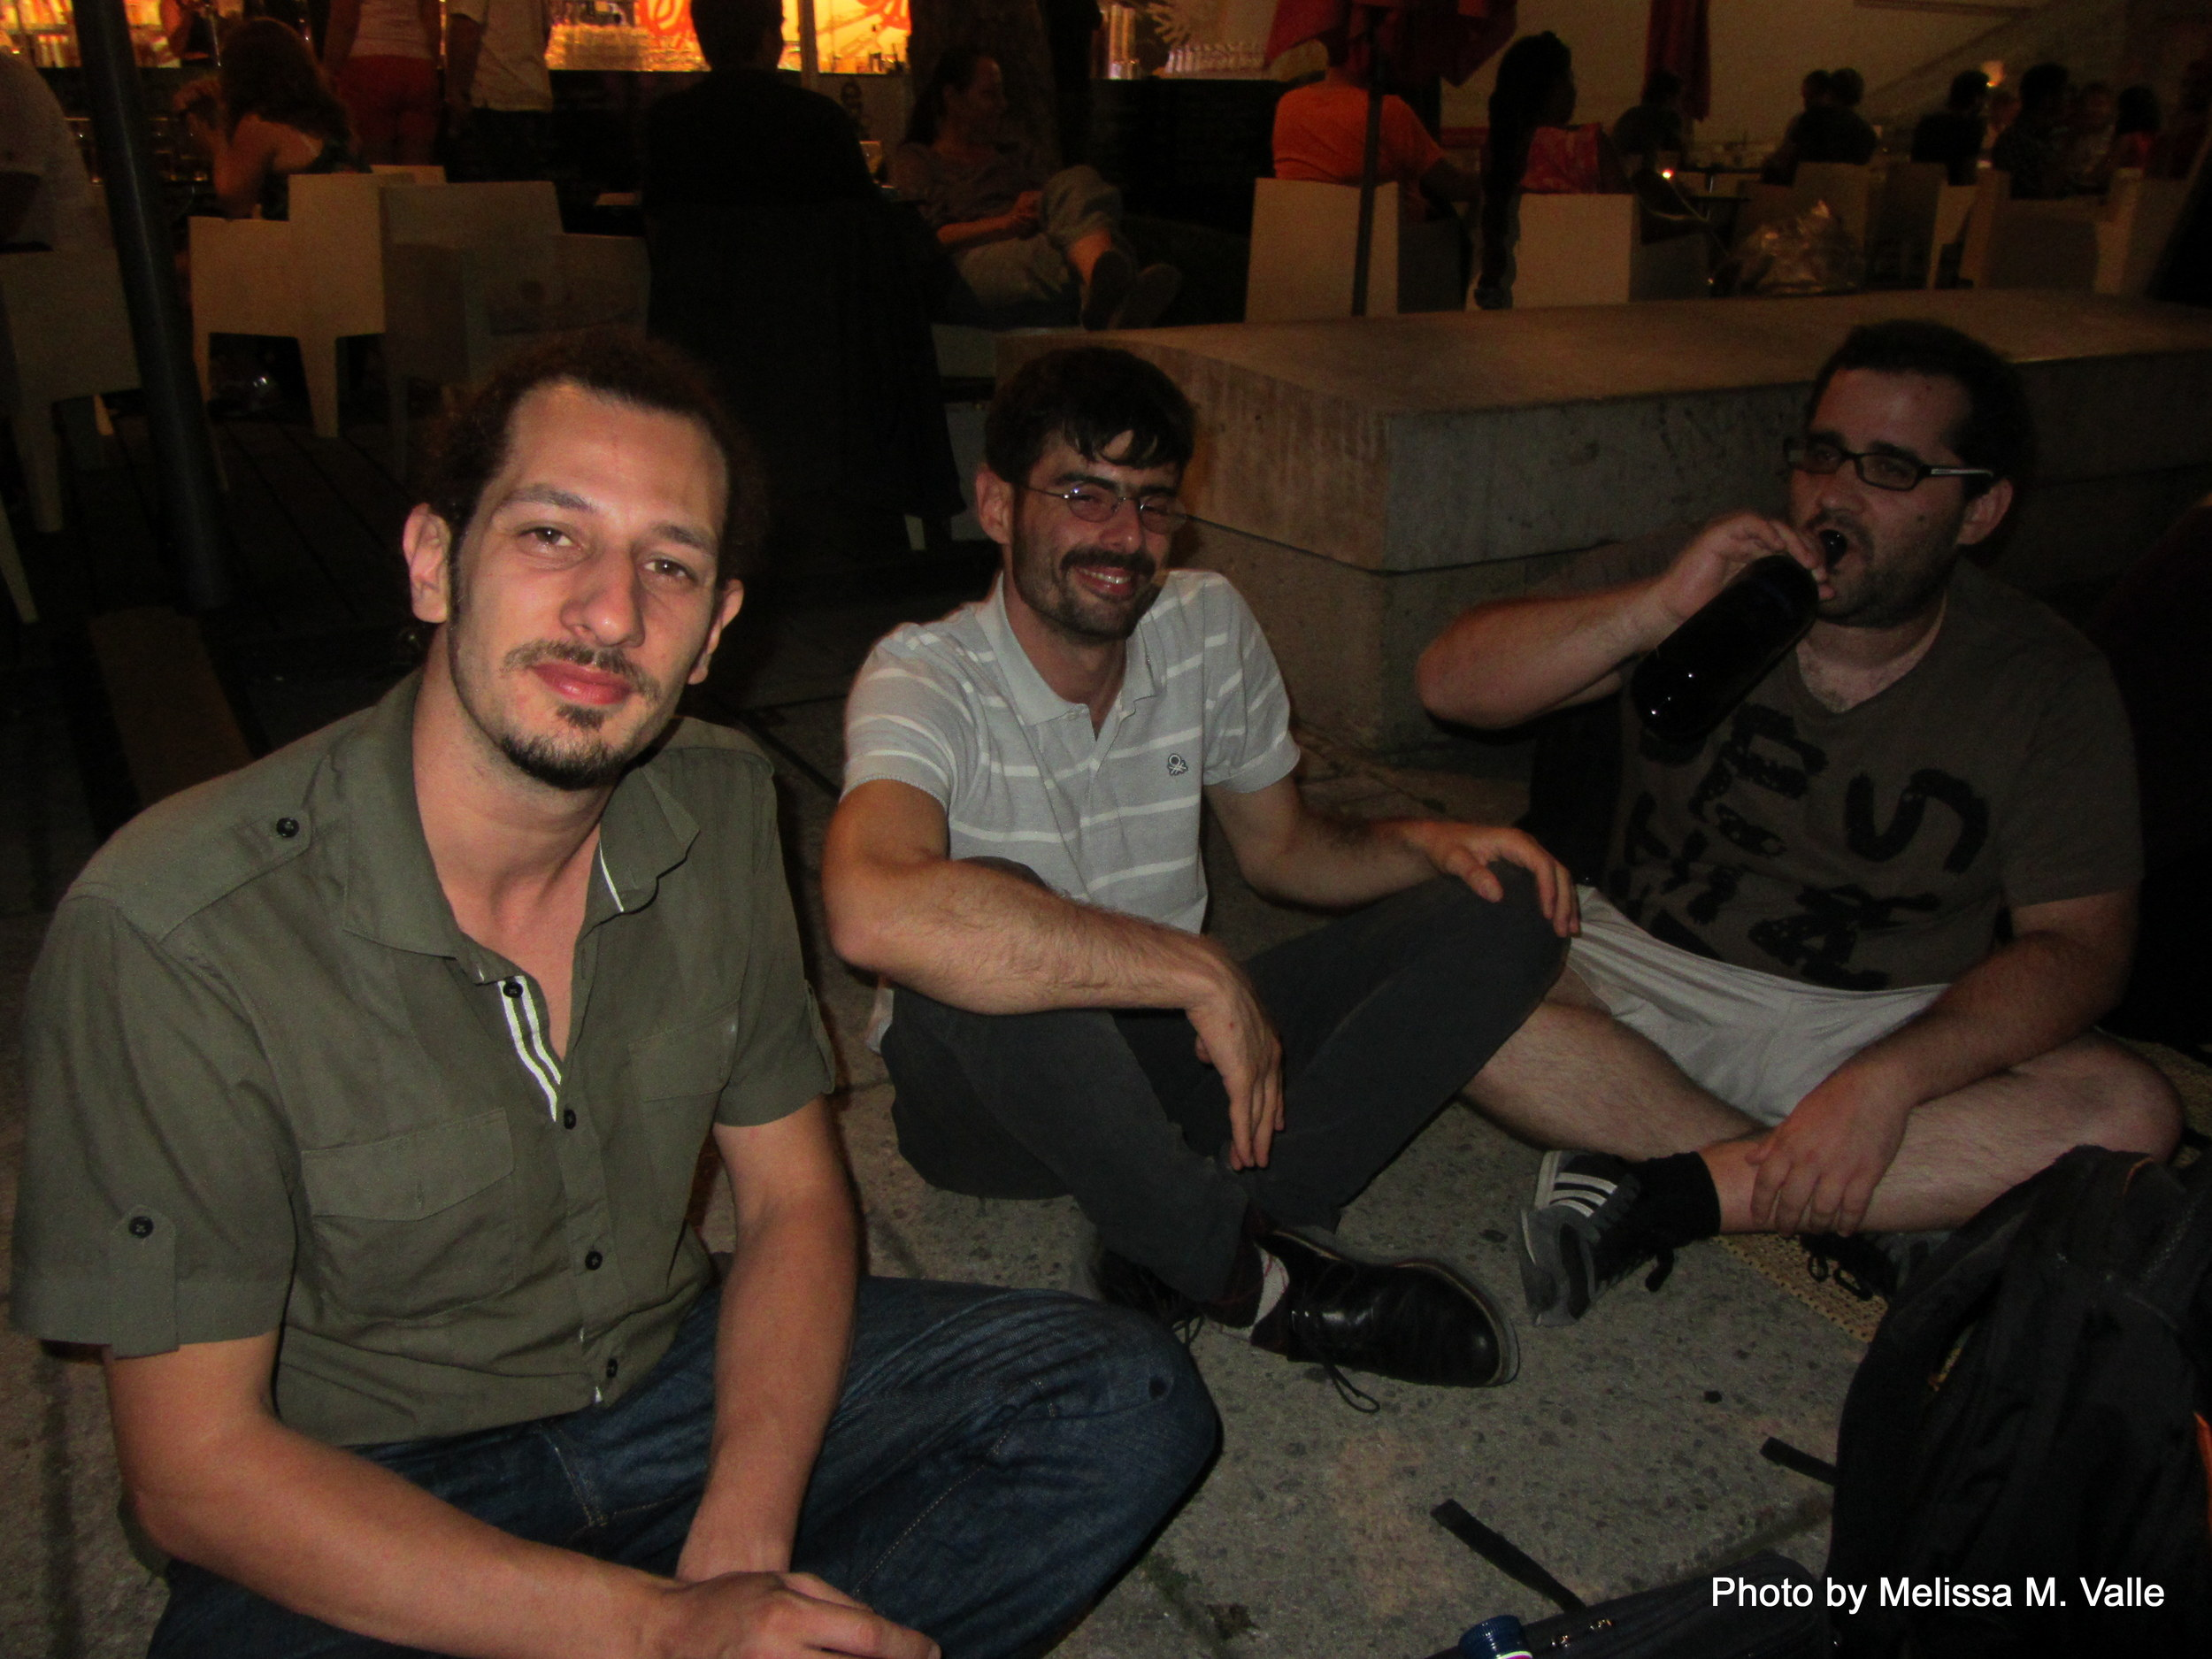 7.7.14 Vienna, Austria-wining it up in Museum Quartier after Amin lecture (18).JPG